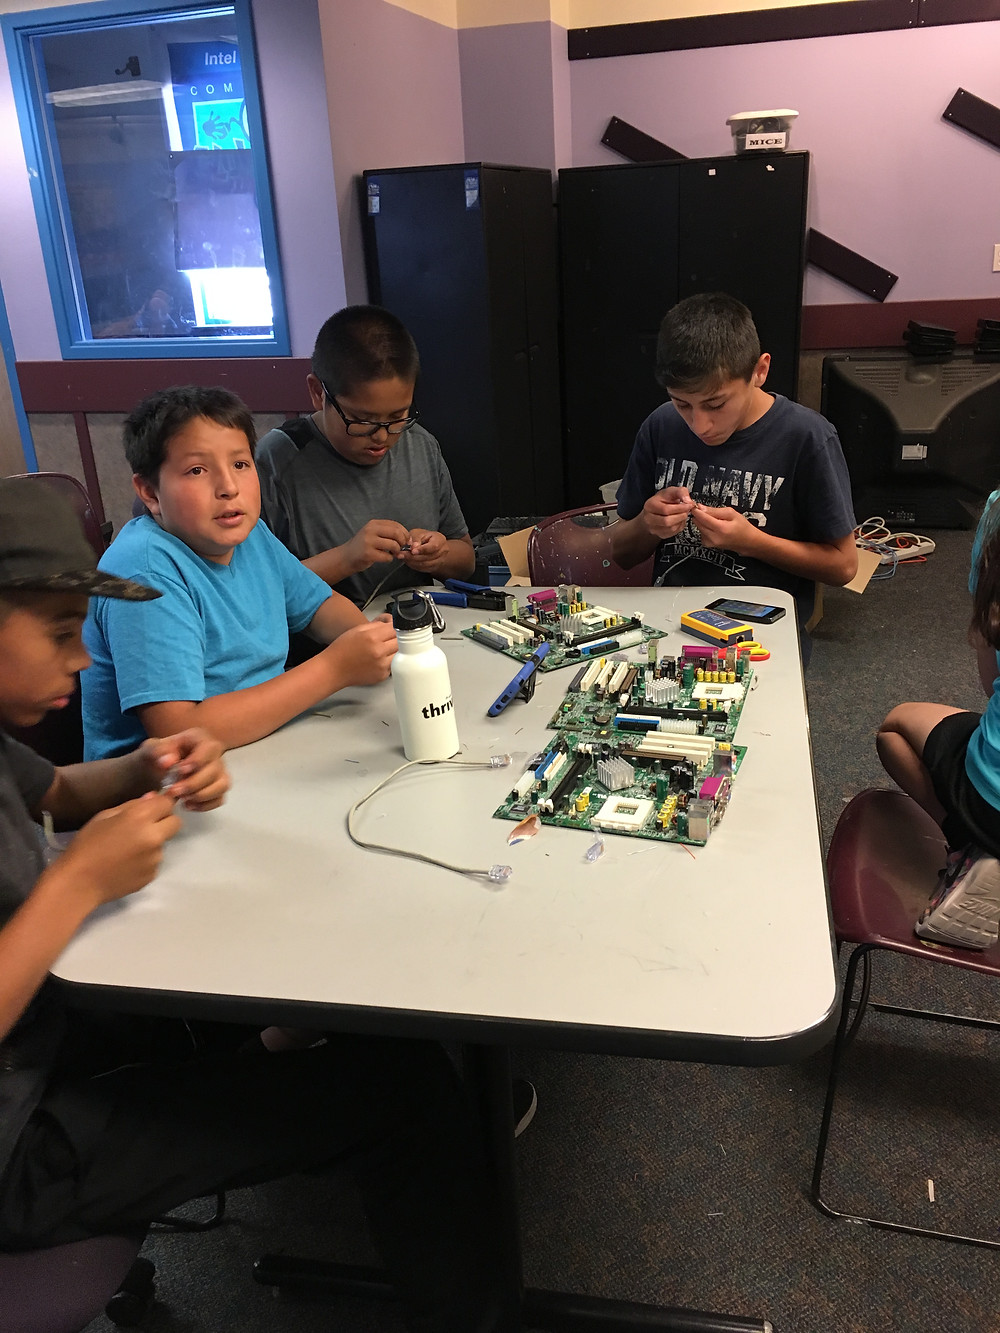 Carlos, Adrian, Elias, and Junior are making the wires to the internet